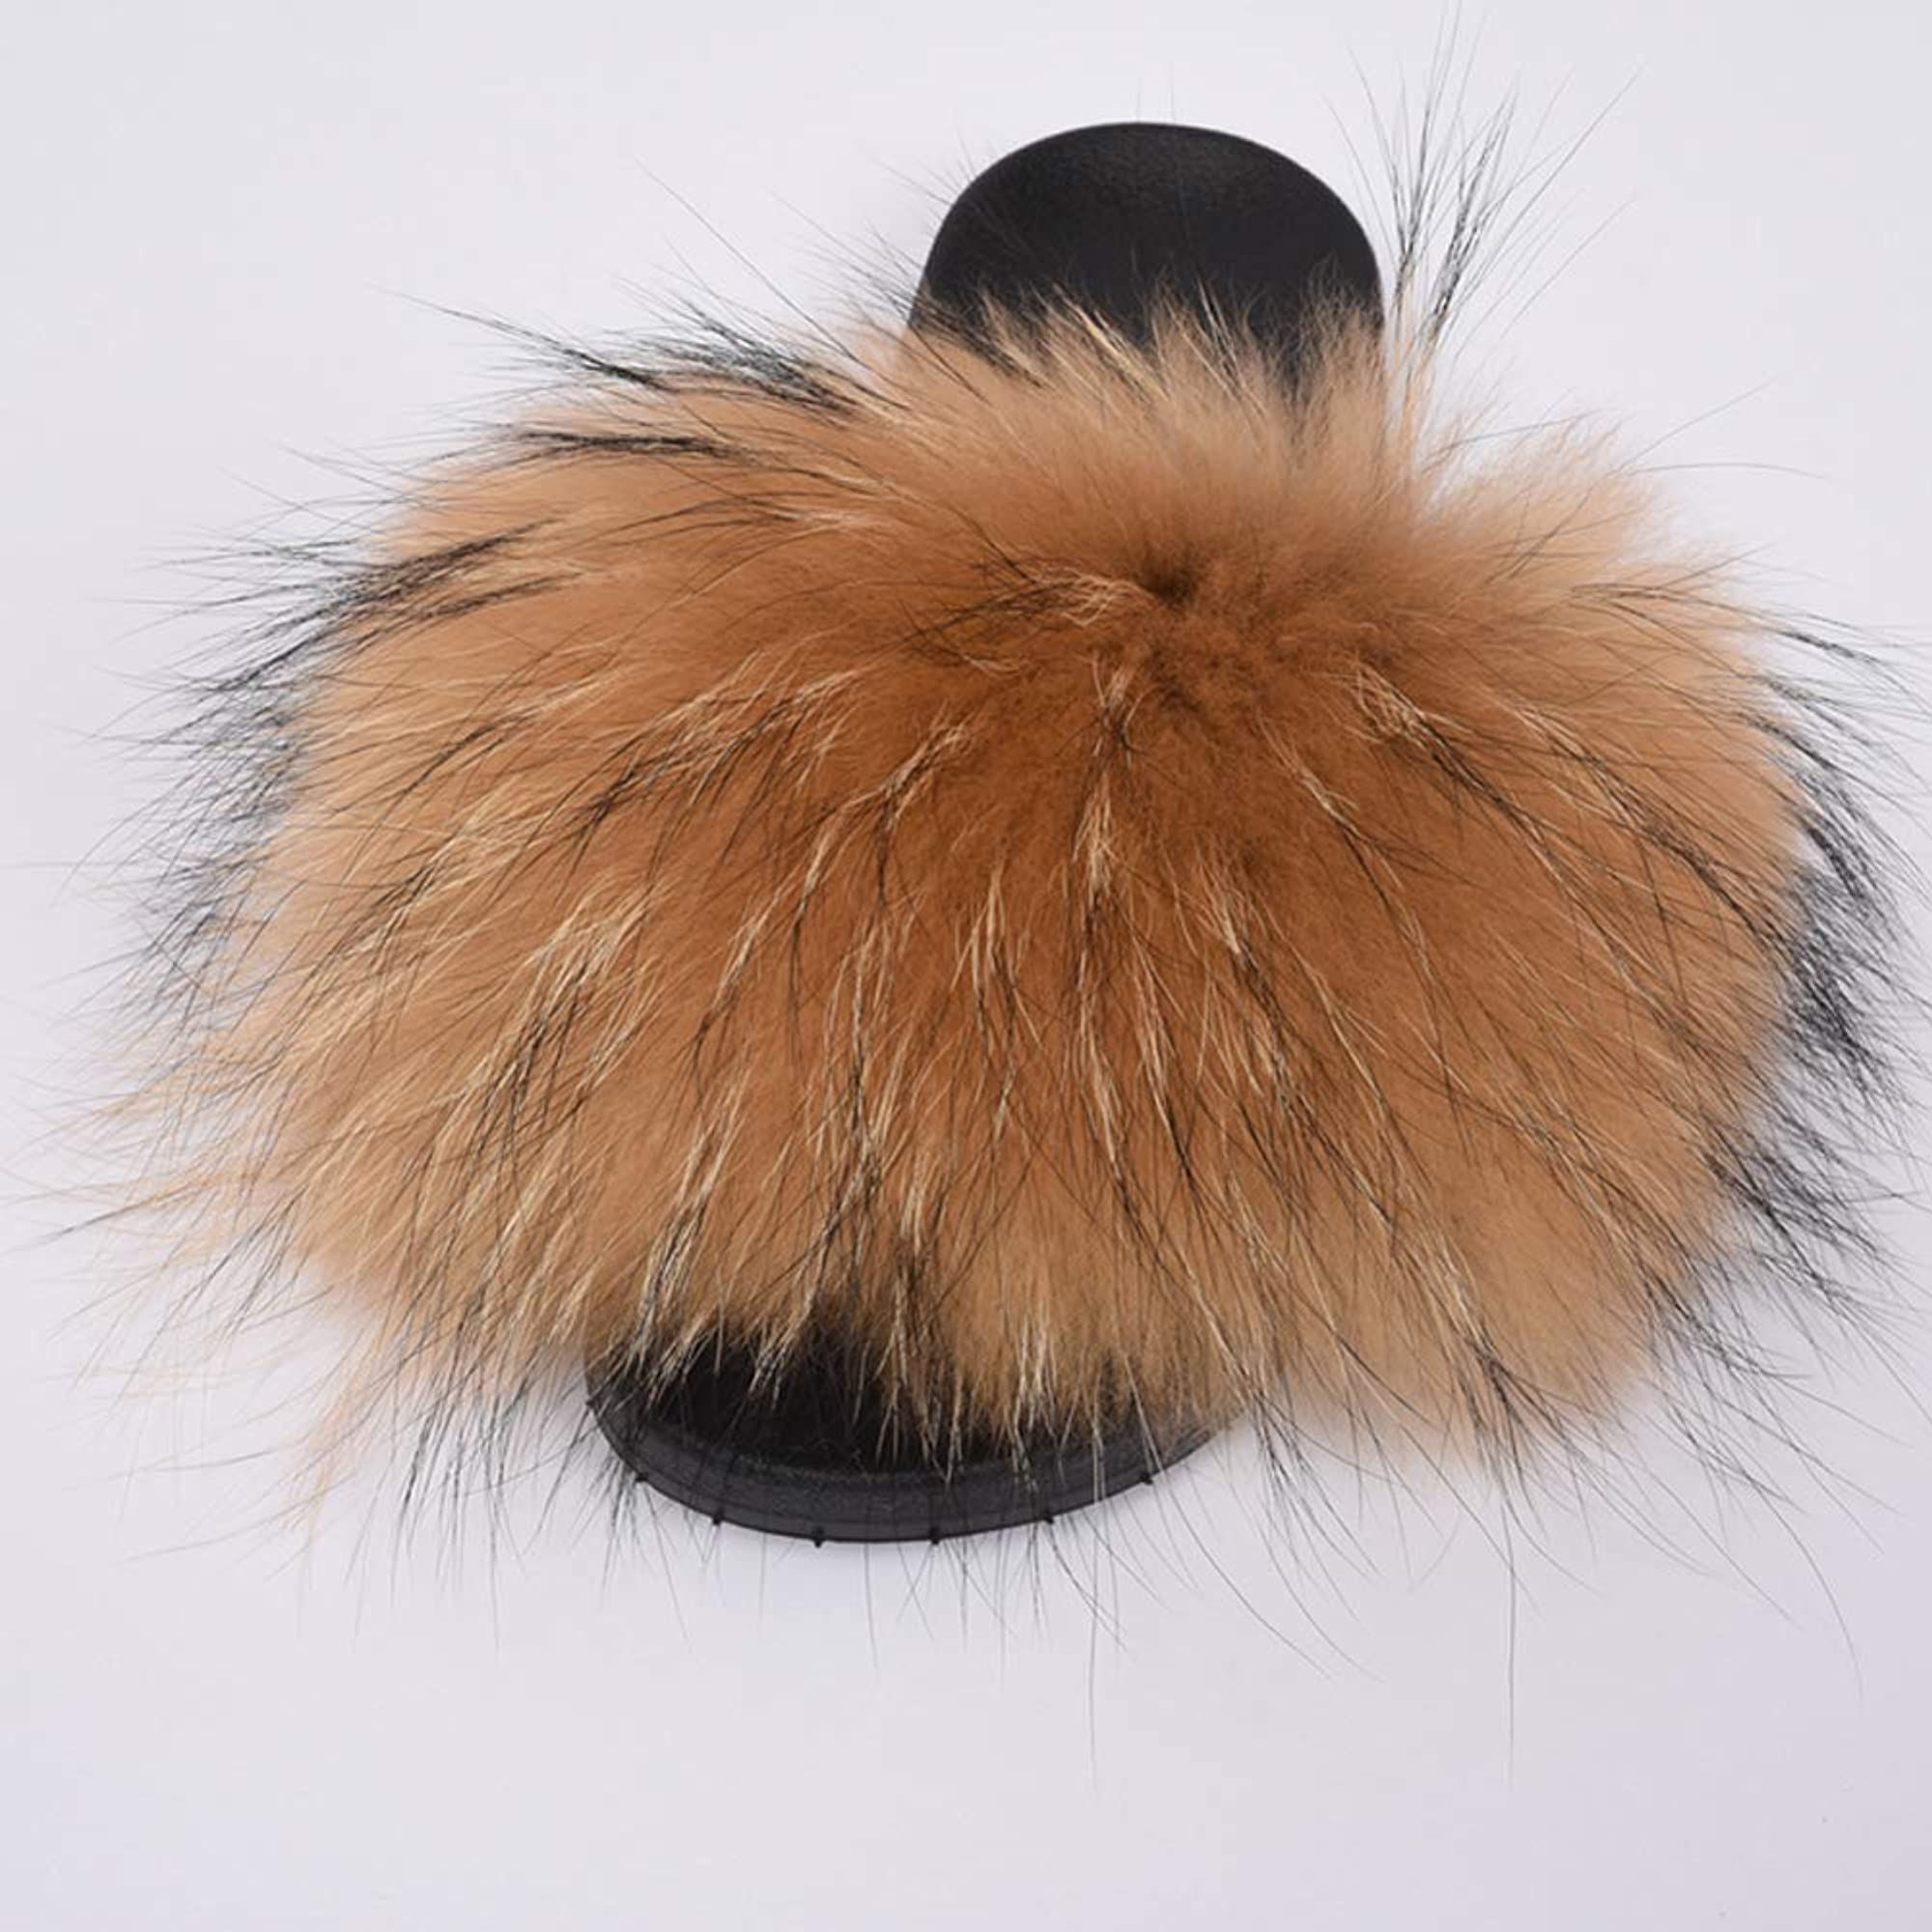 Outdoor Fluffy House Fur Slippers